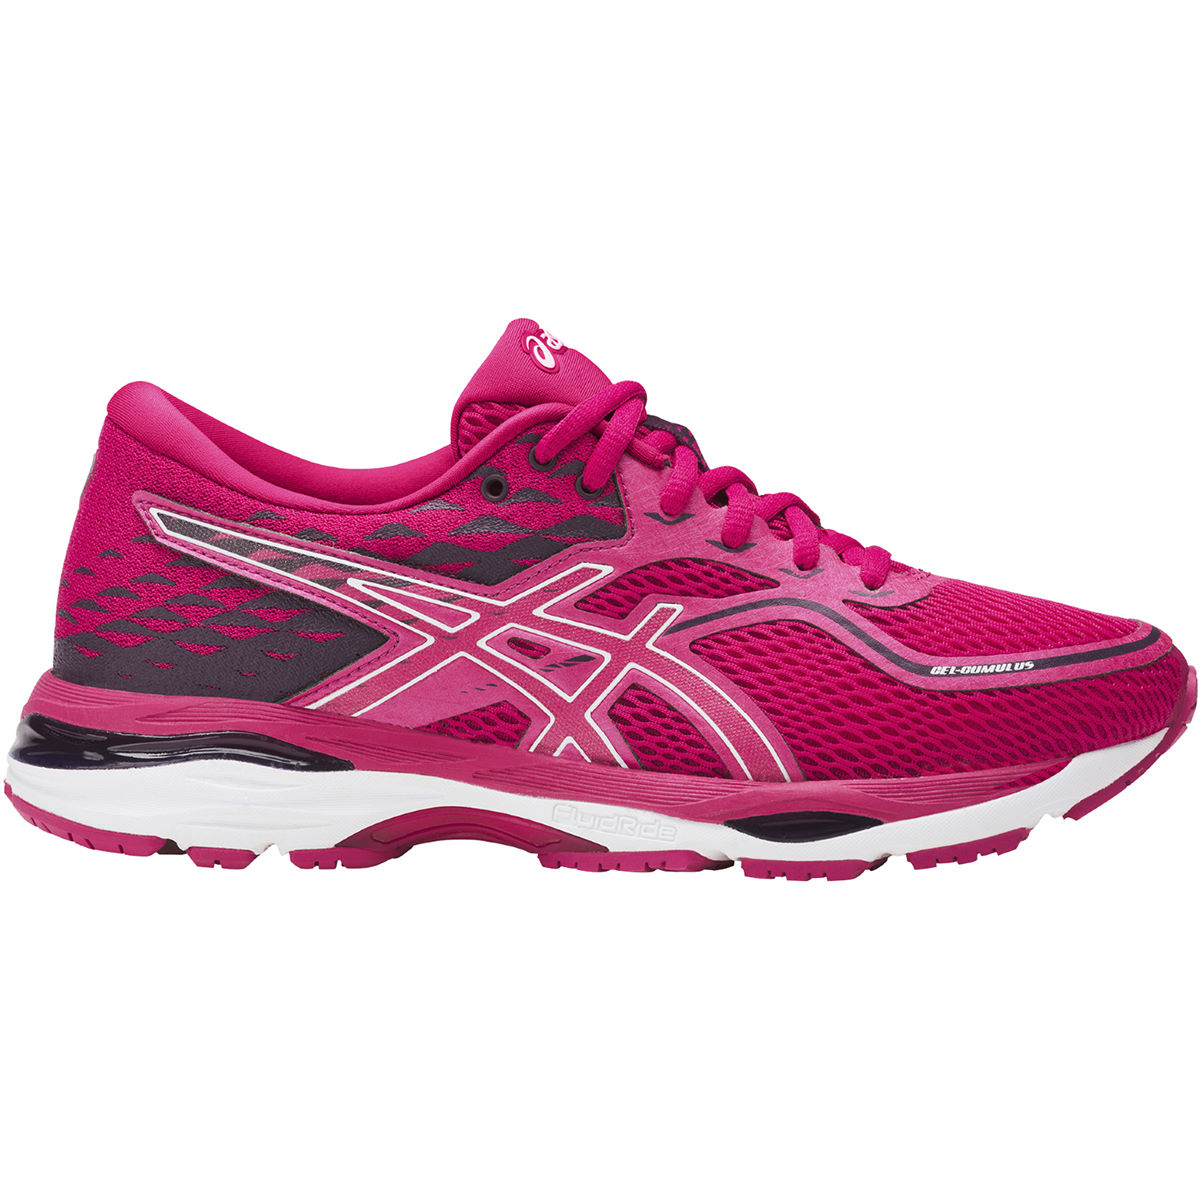 Asics Lightweight Stability Running Shoes